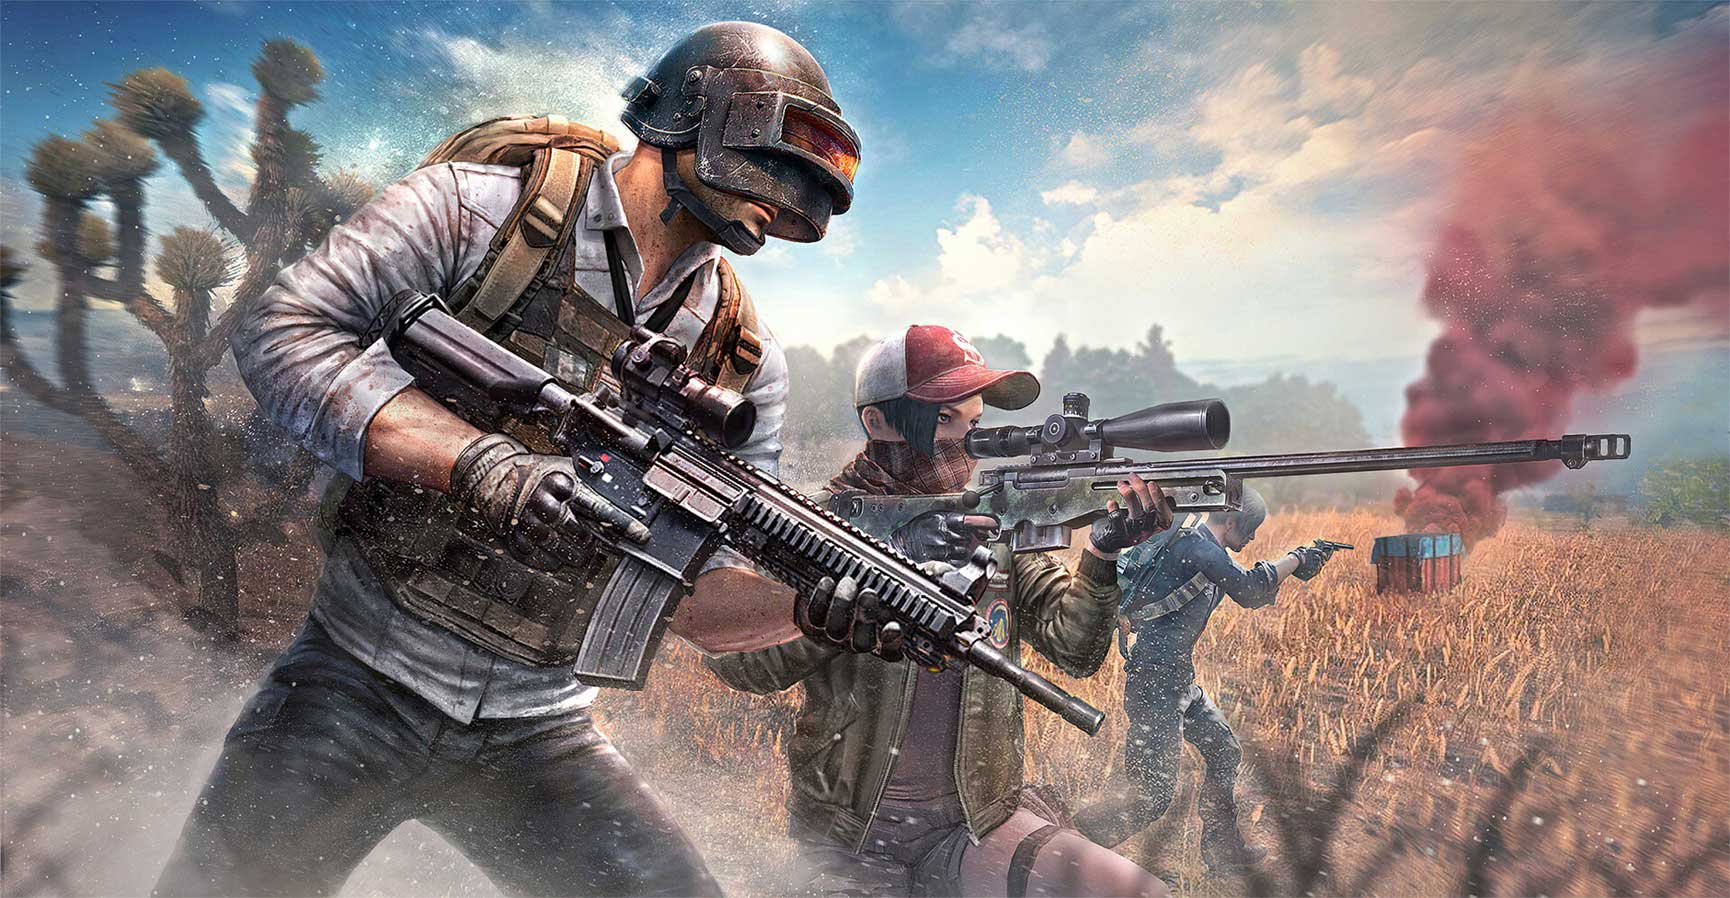 Pubg mobile will not relaunch in india